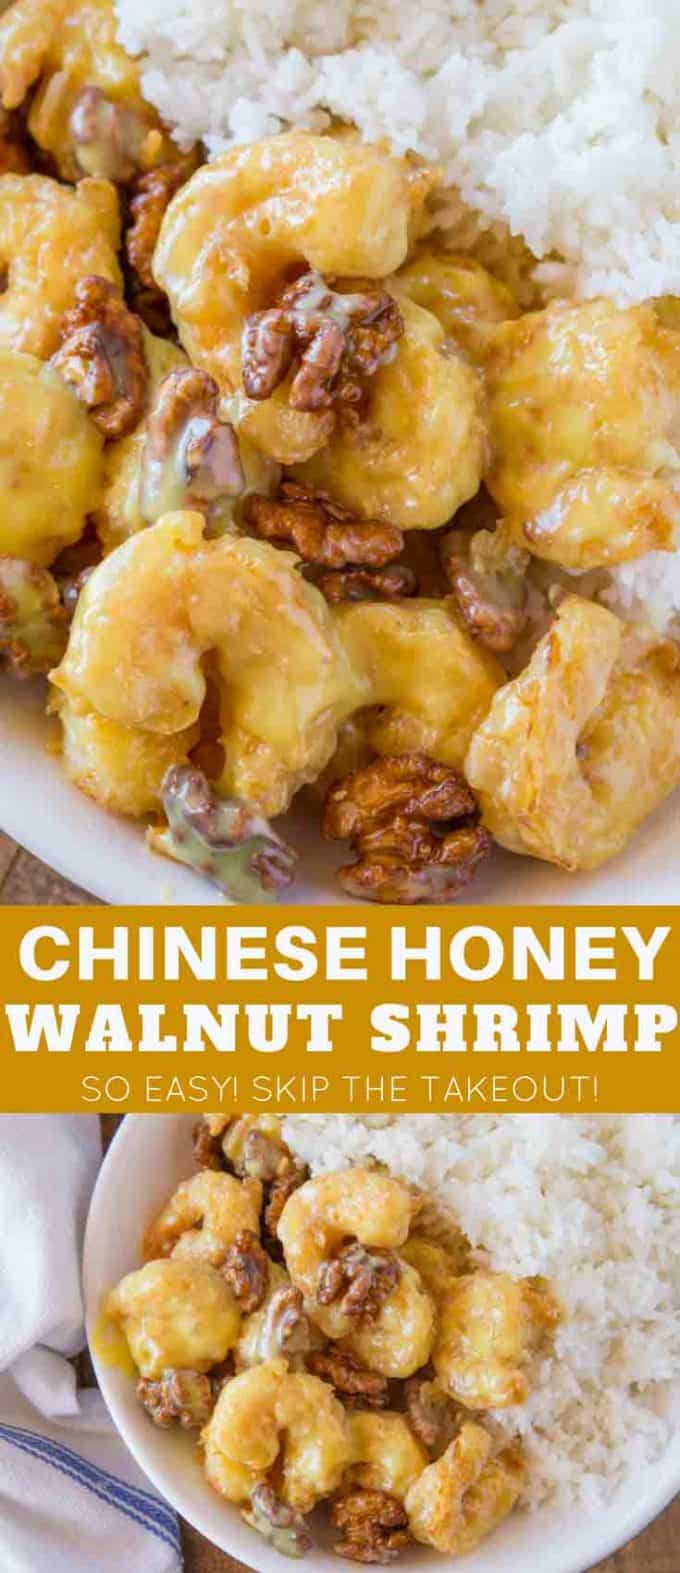 Chinese Honey Walnut Shrimp